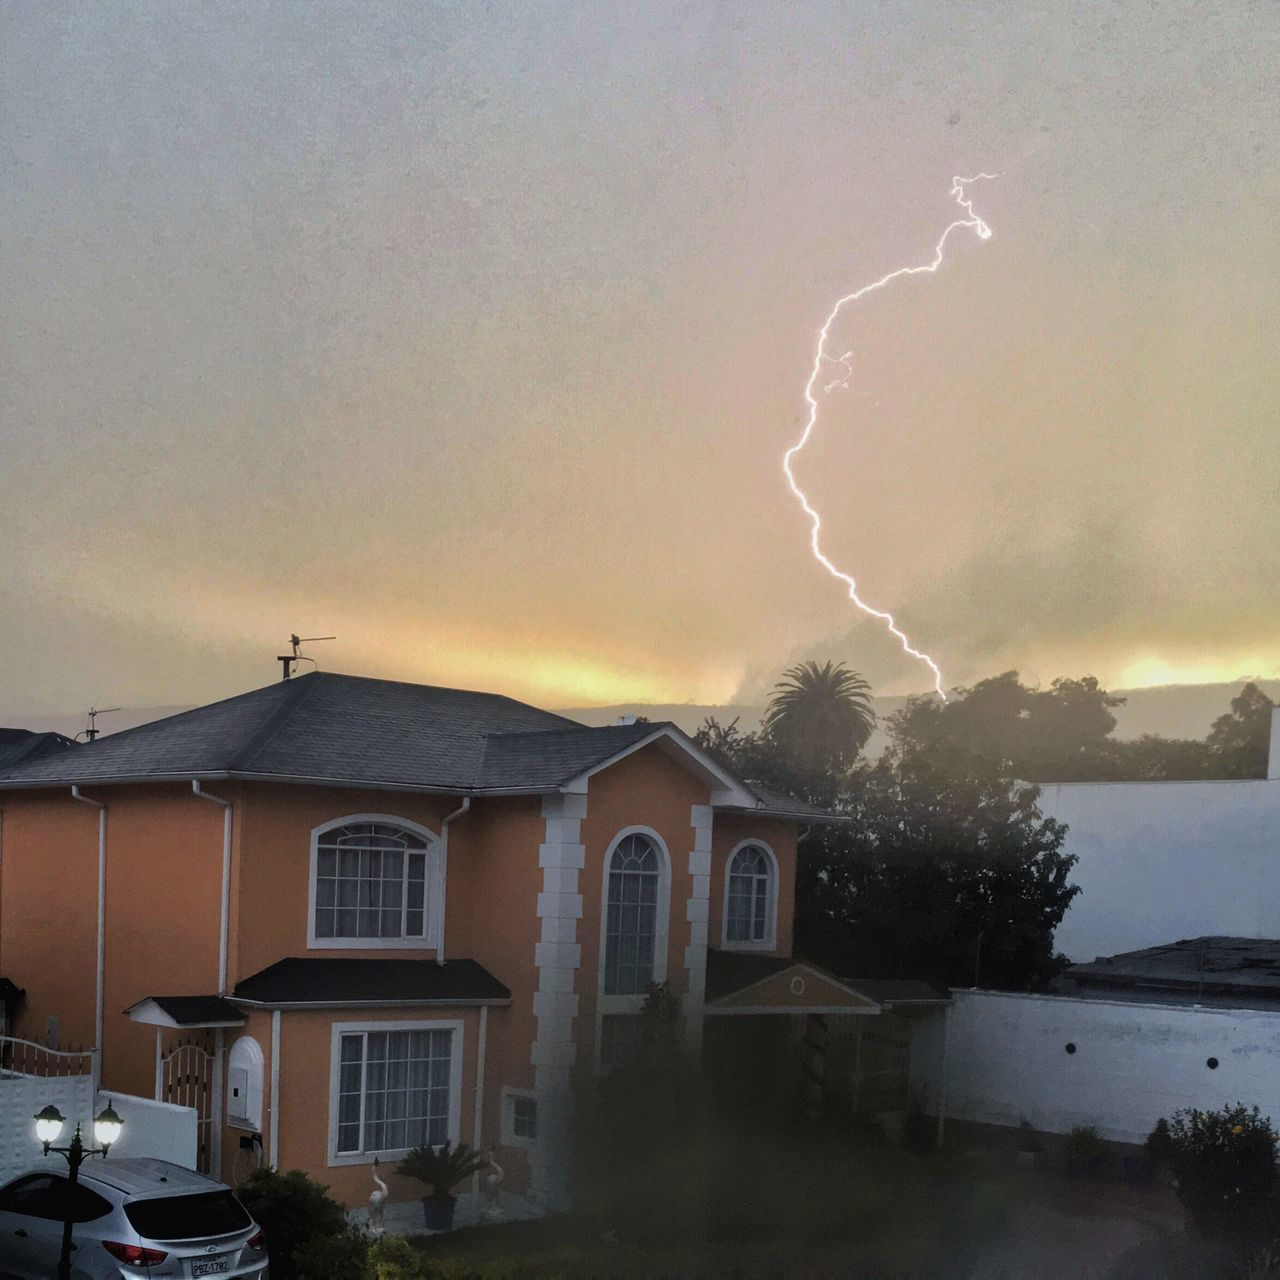 lightning, thunderstorm, weather, storm, storm cloud, power in nature, dramatic sky, sky, danger, built structure, building exterior, forked lightning, architecture, cloud - sky, no people, nature, tree, outdoors, beauty in nature, city, day